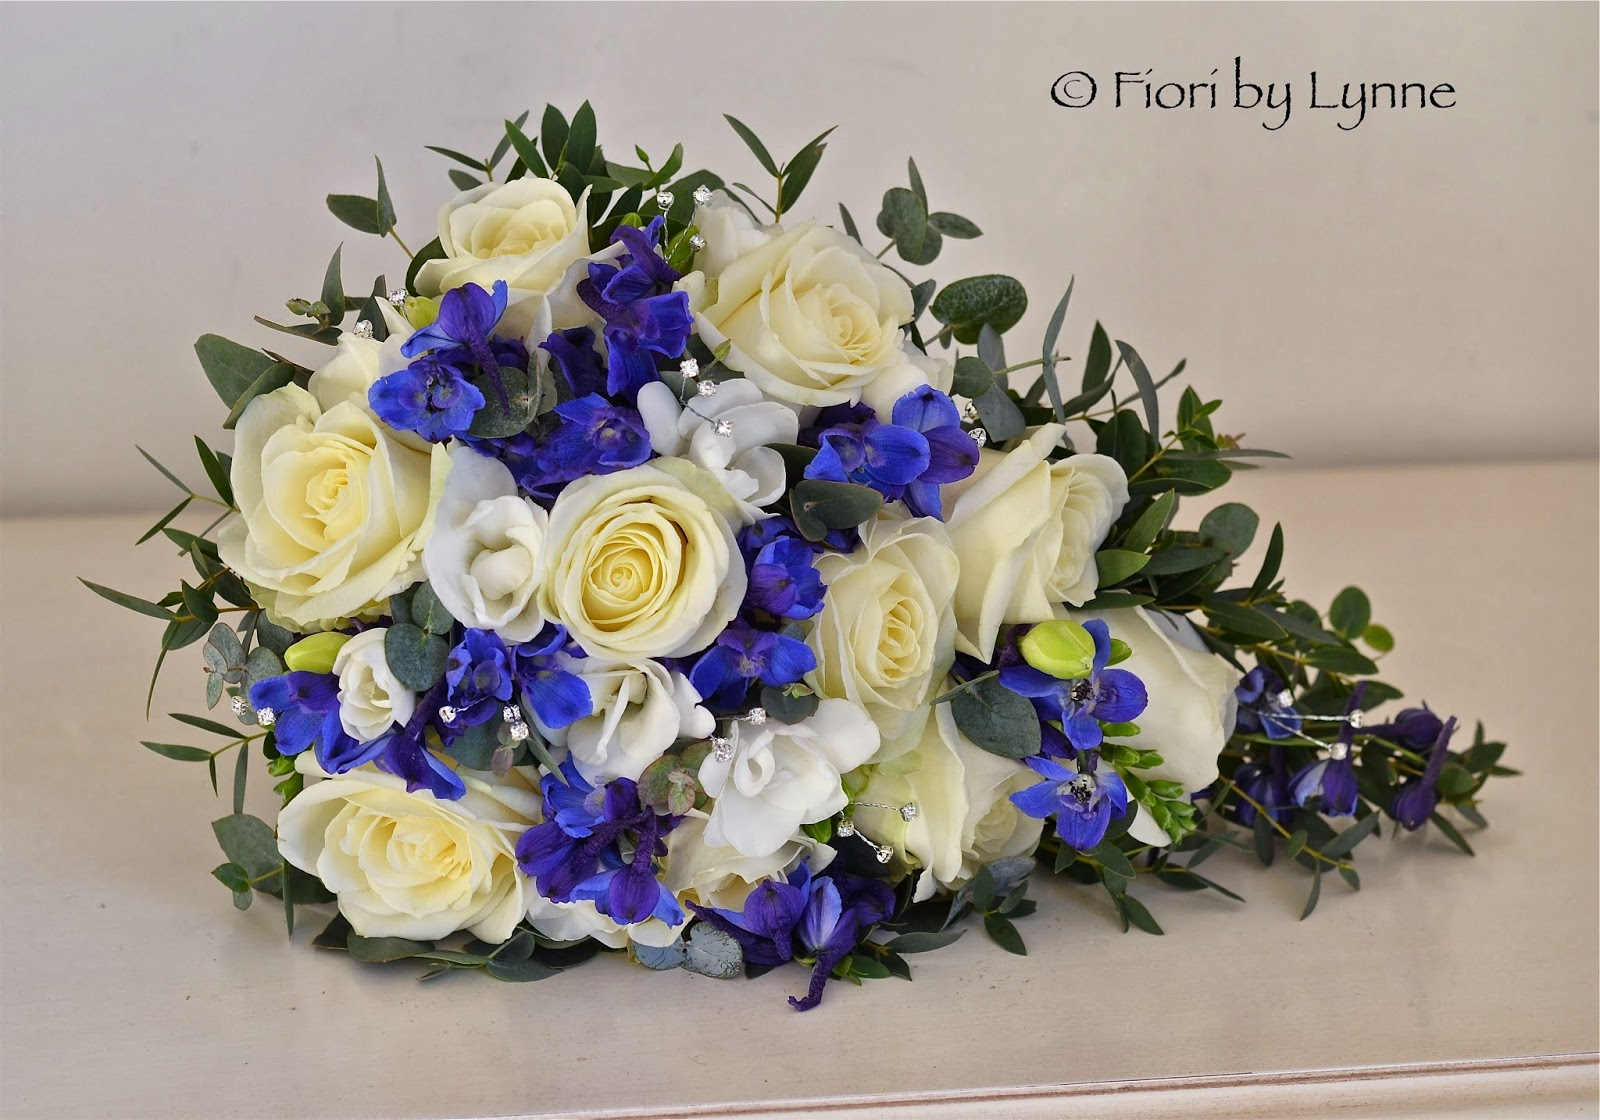 Wedding flowers blog catherines blue white and silver wedding catherines blue white and silver wedding flowers new place izmirmasajfo